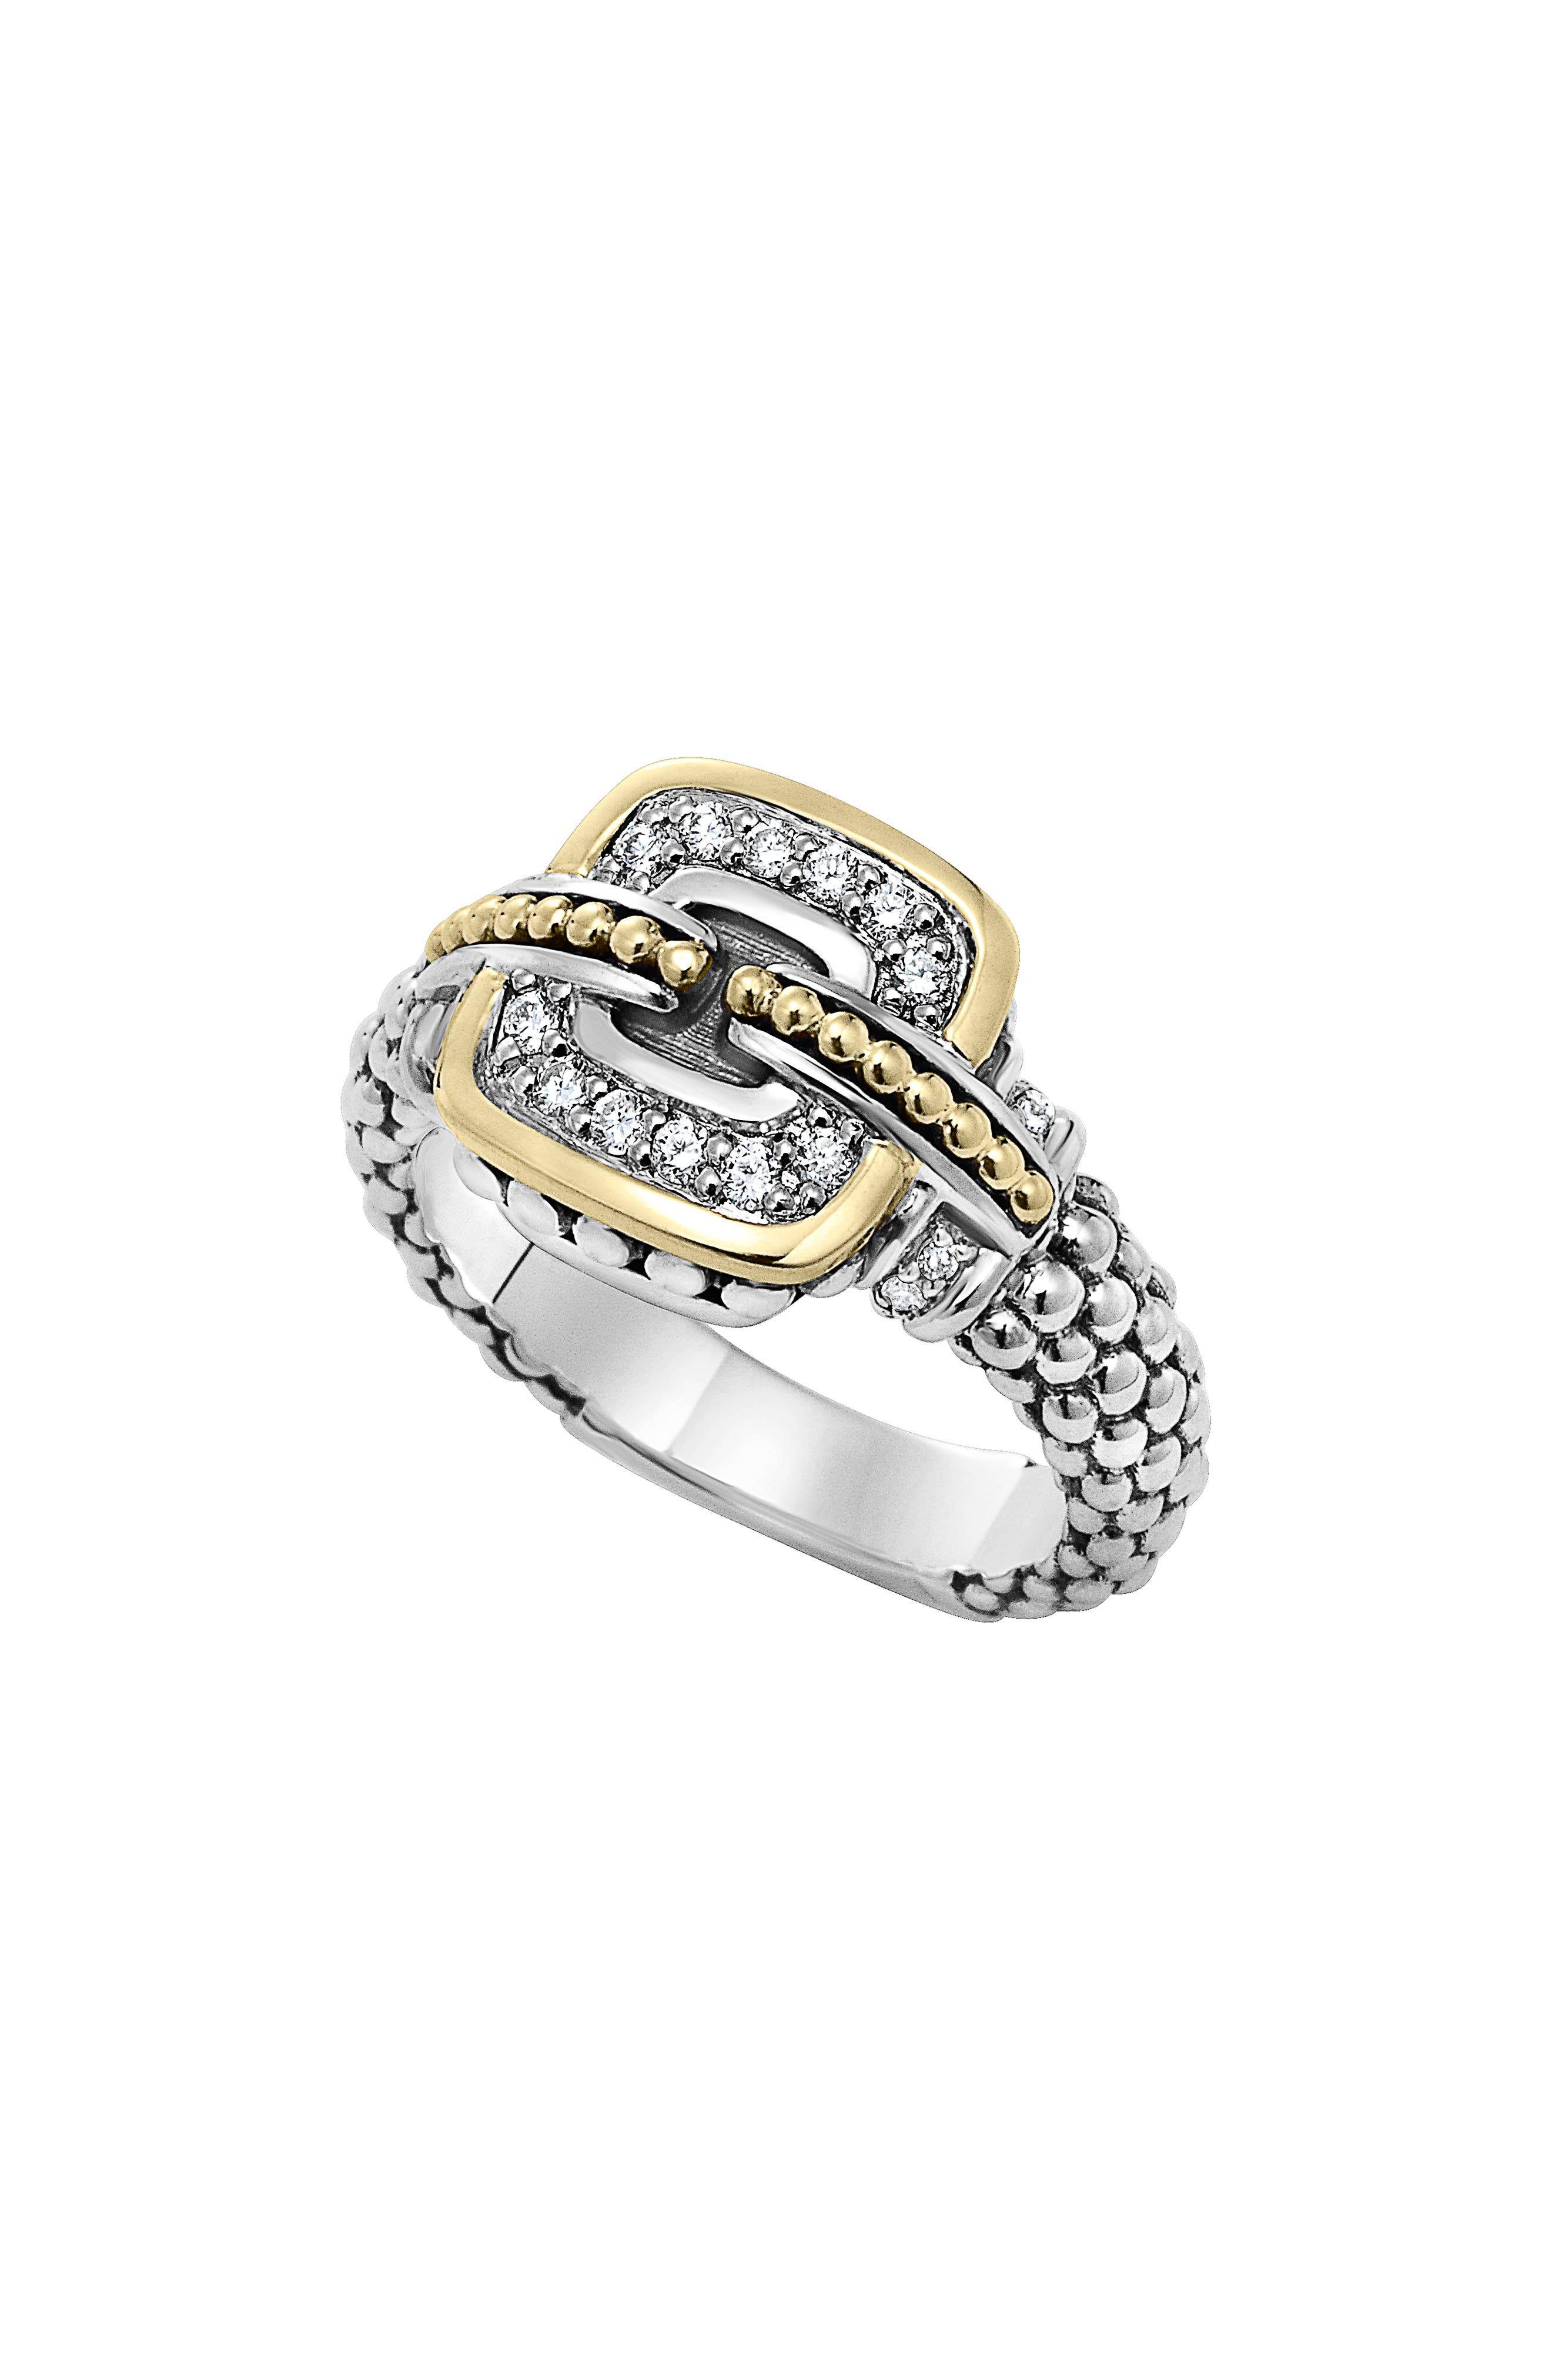 'Cushion' Small Diamond Ring,                         Main,                         color, Silver/ Gold